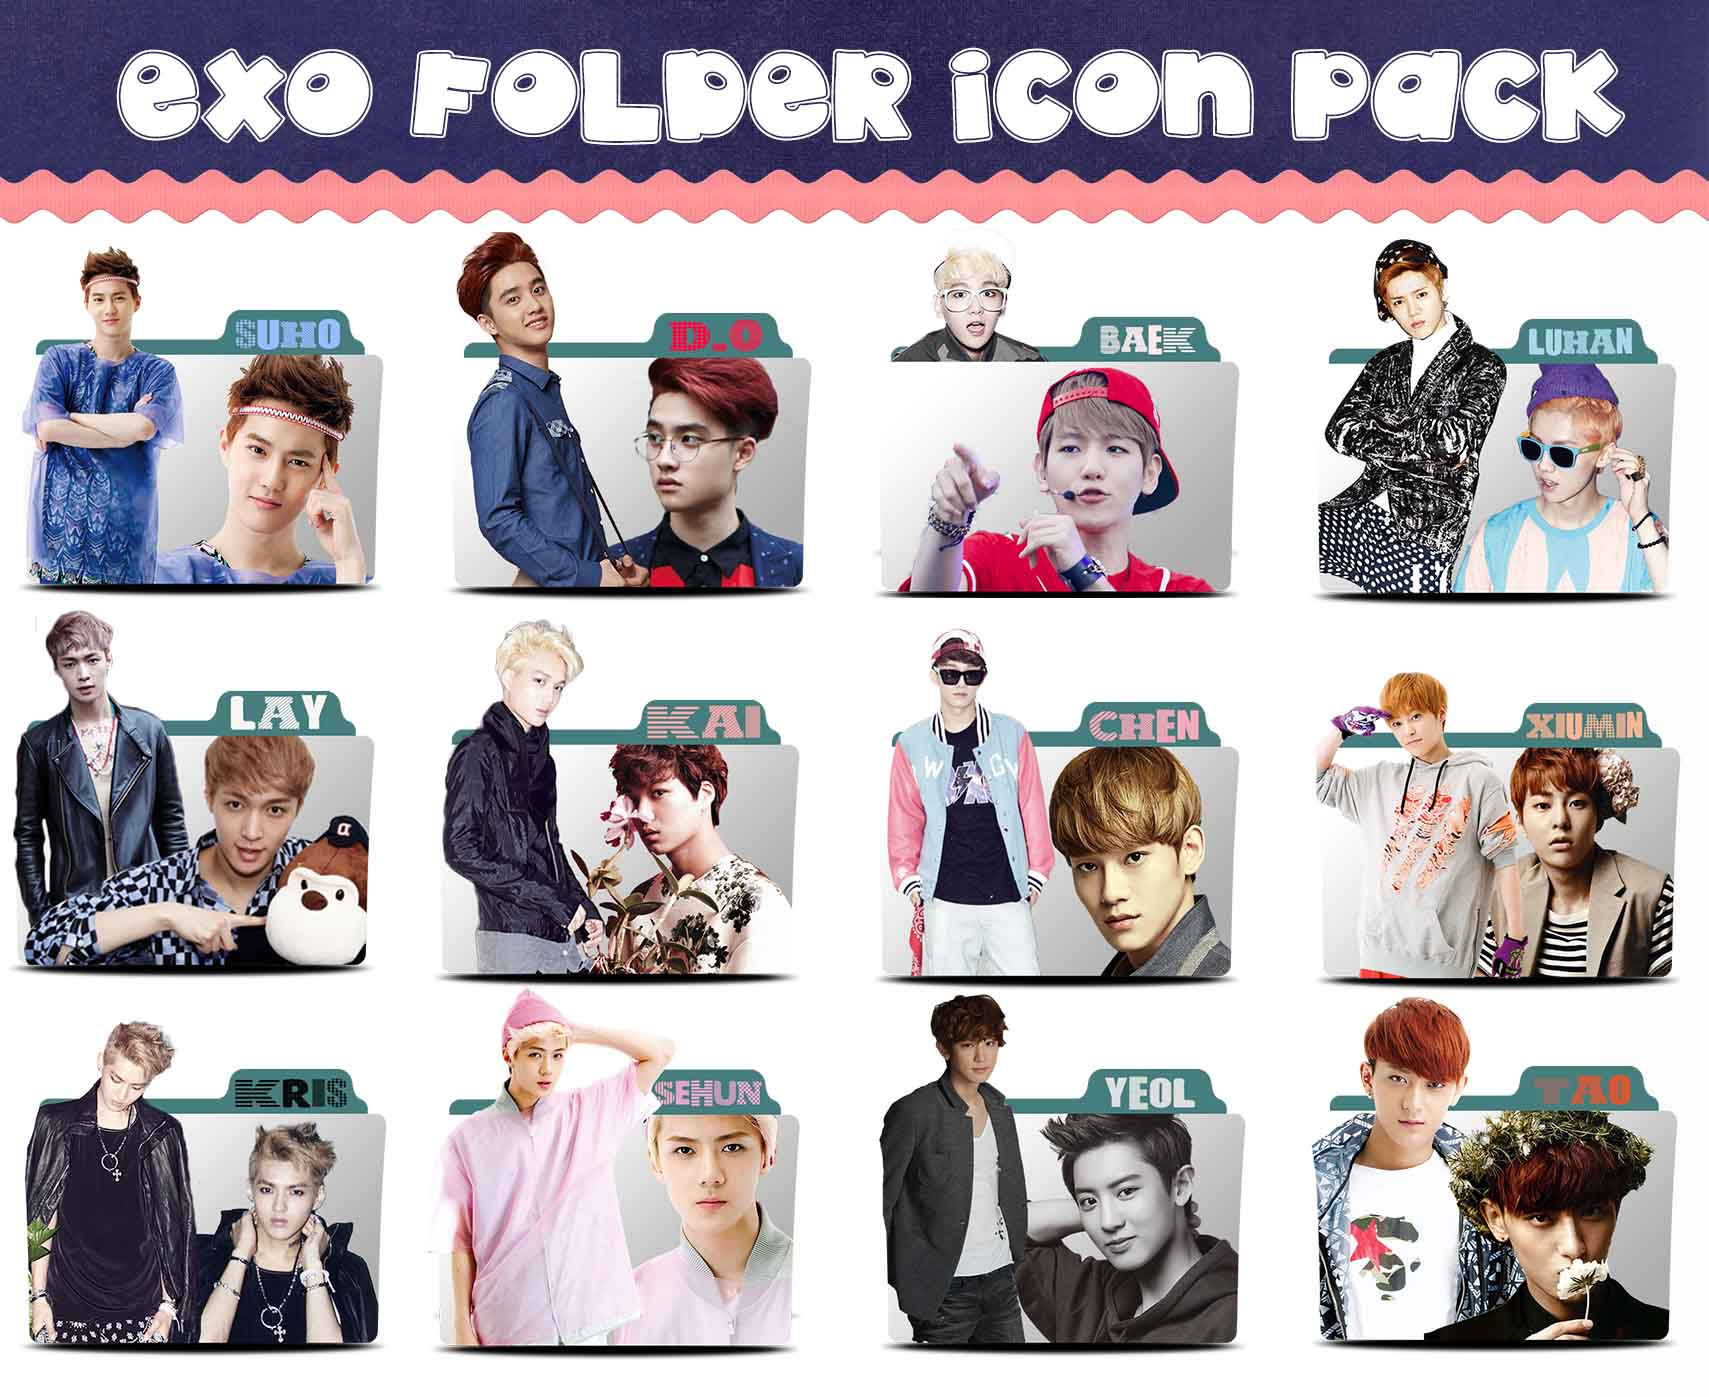 Icon pack EXO by sirius-12 on DeviantArt